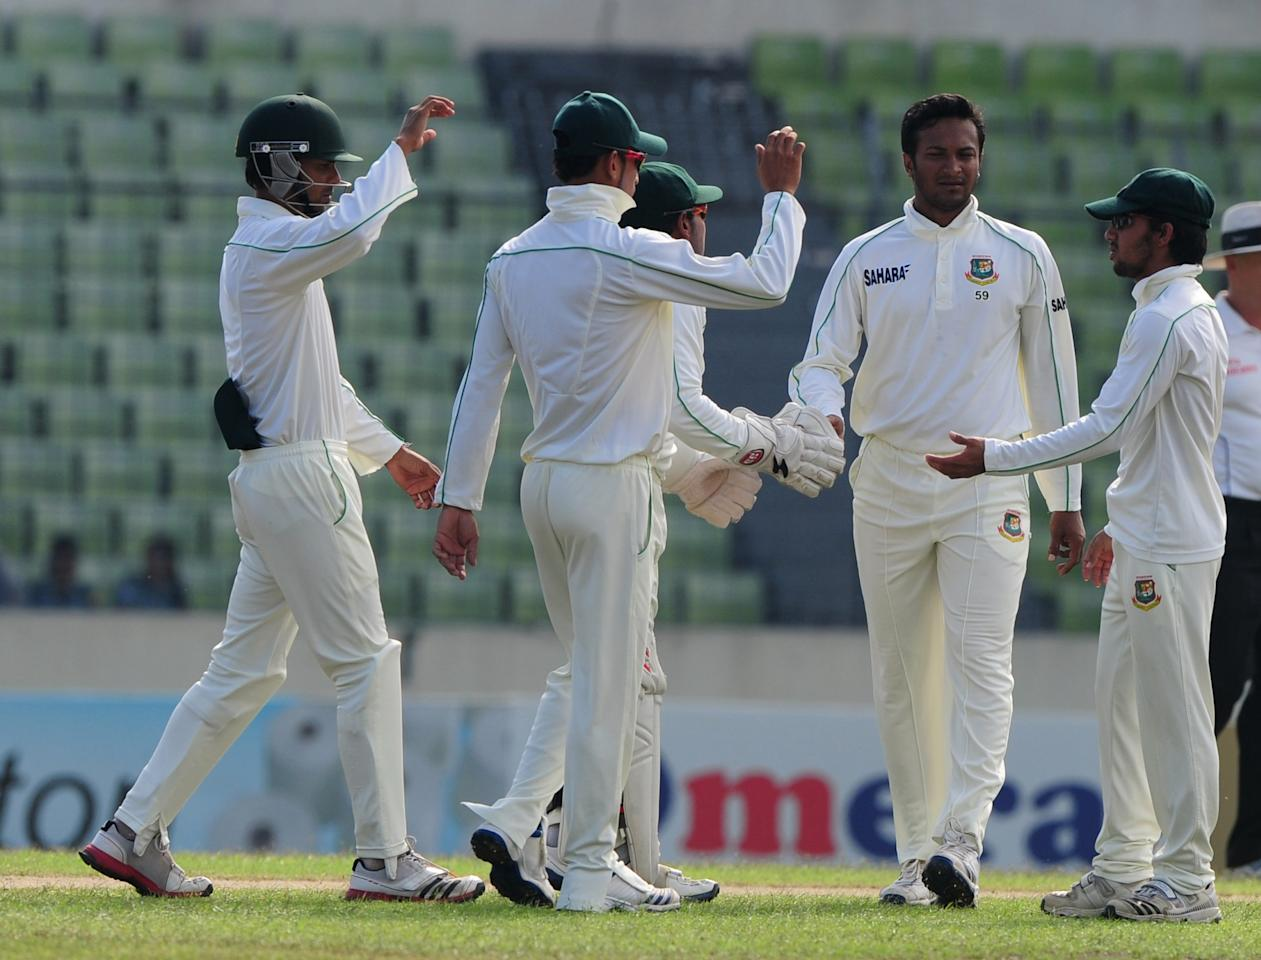 Bangladesh cricketer  Shakib Al Hasan (2nd R) celebrates with his teammates after the dismissal of the unseen New Zealand batsman Ish Sodhi during the fourth day of the second cricket Test match between Bangladesh and New Zealand at the Sher-e Bangla National Stadium in Dhaka on October 24, 2013. AFP PHOTO/ Munir uz ZAMAN        (Photo credit should read MUNIR UZ ZAMAN/AFP/Getty Images)